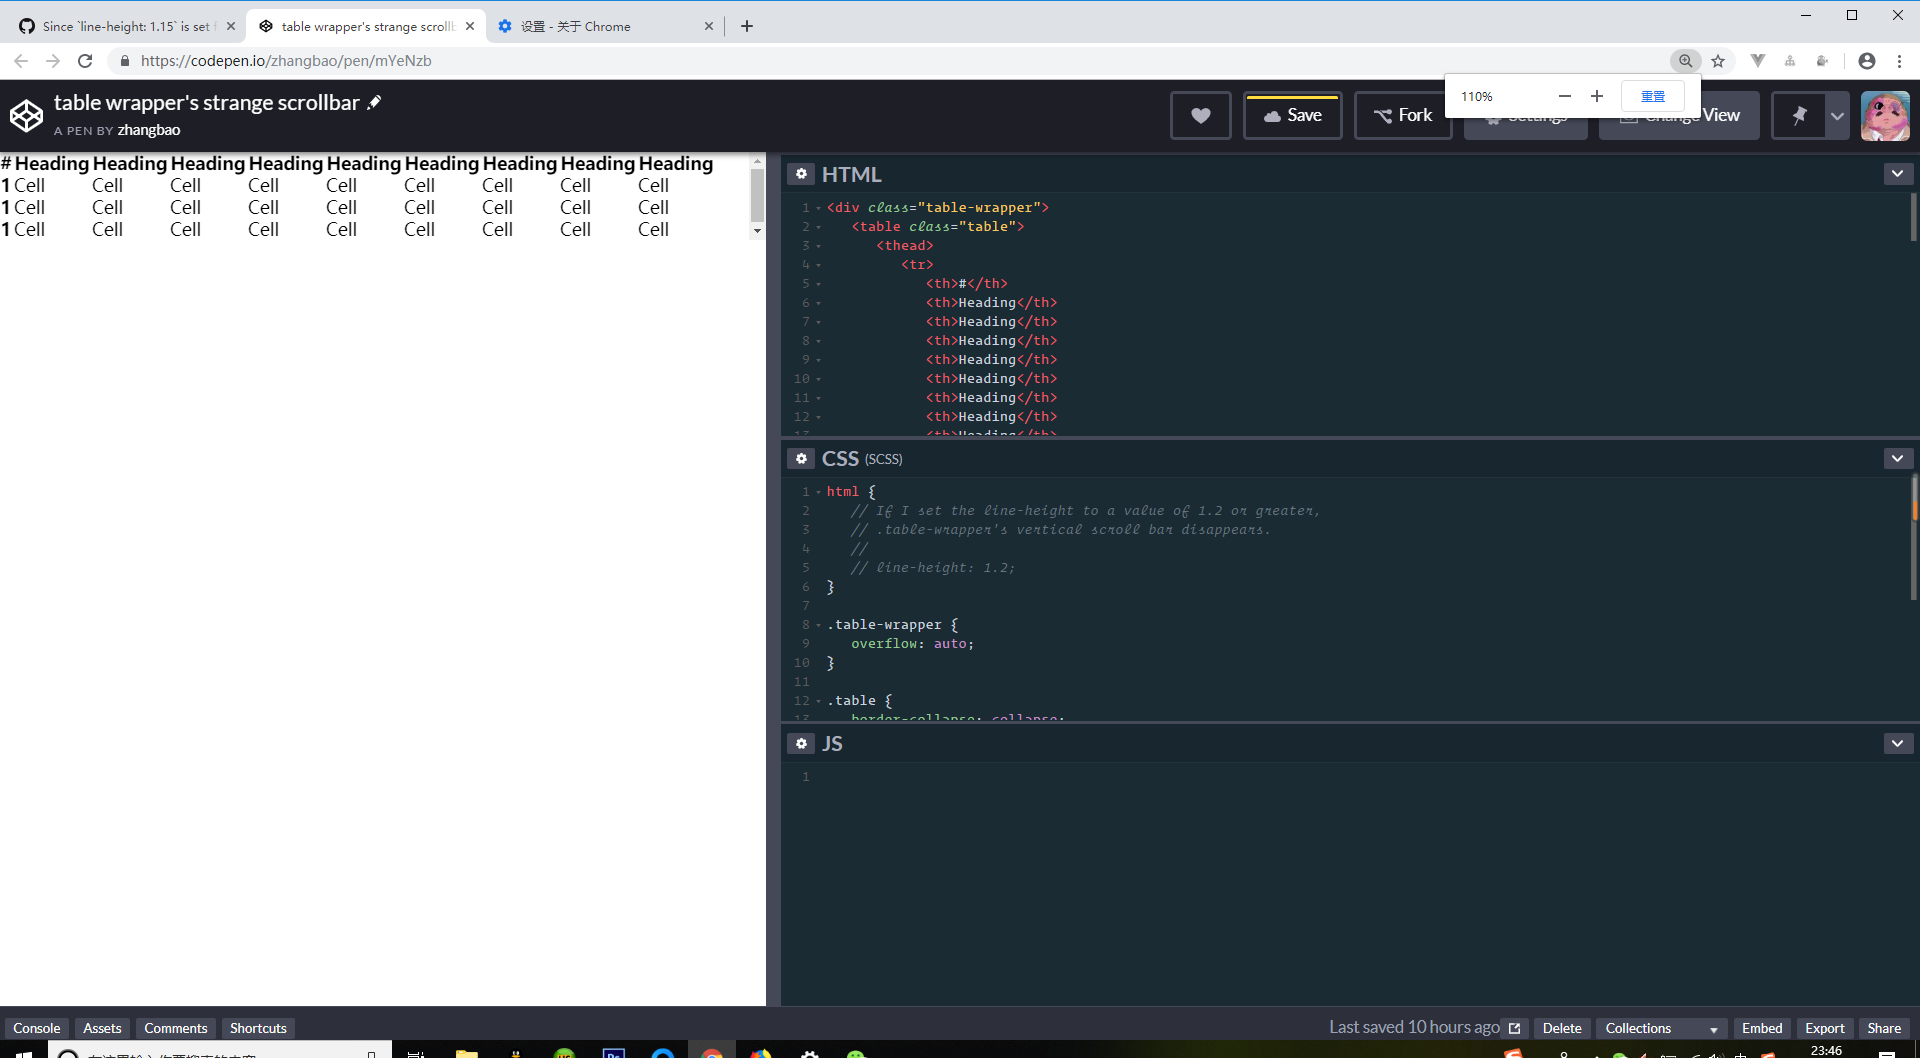 Since `line-height: 1 15` is set for `html`, vertical